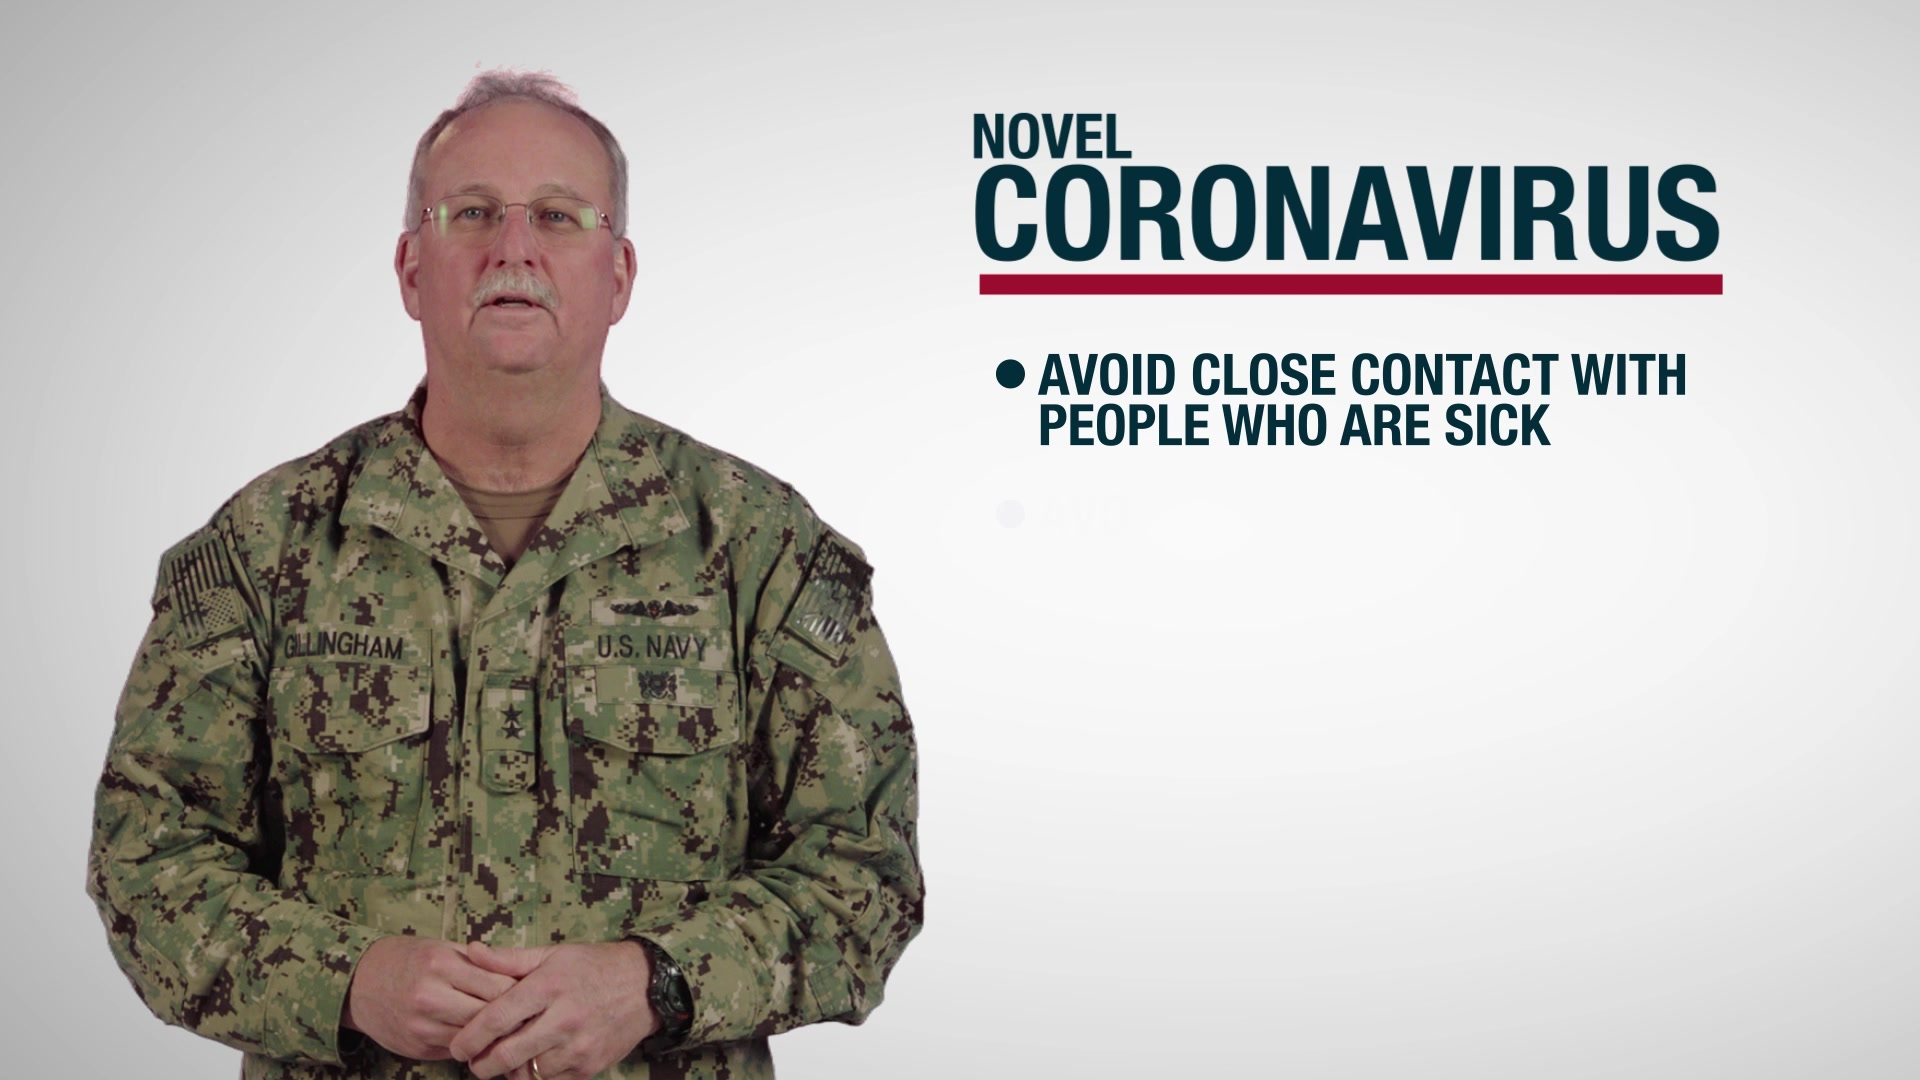 US Navy Surgeon General message to Sailors and Marines about CDC guidelines regarding the Novel Coronavirus. Produced by Navy Medicine Professional Development Center (NMPDC).